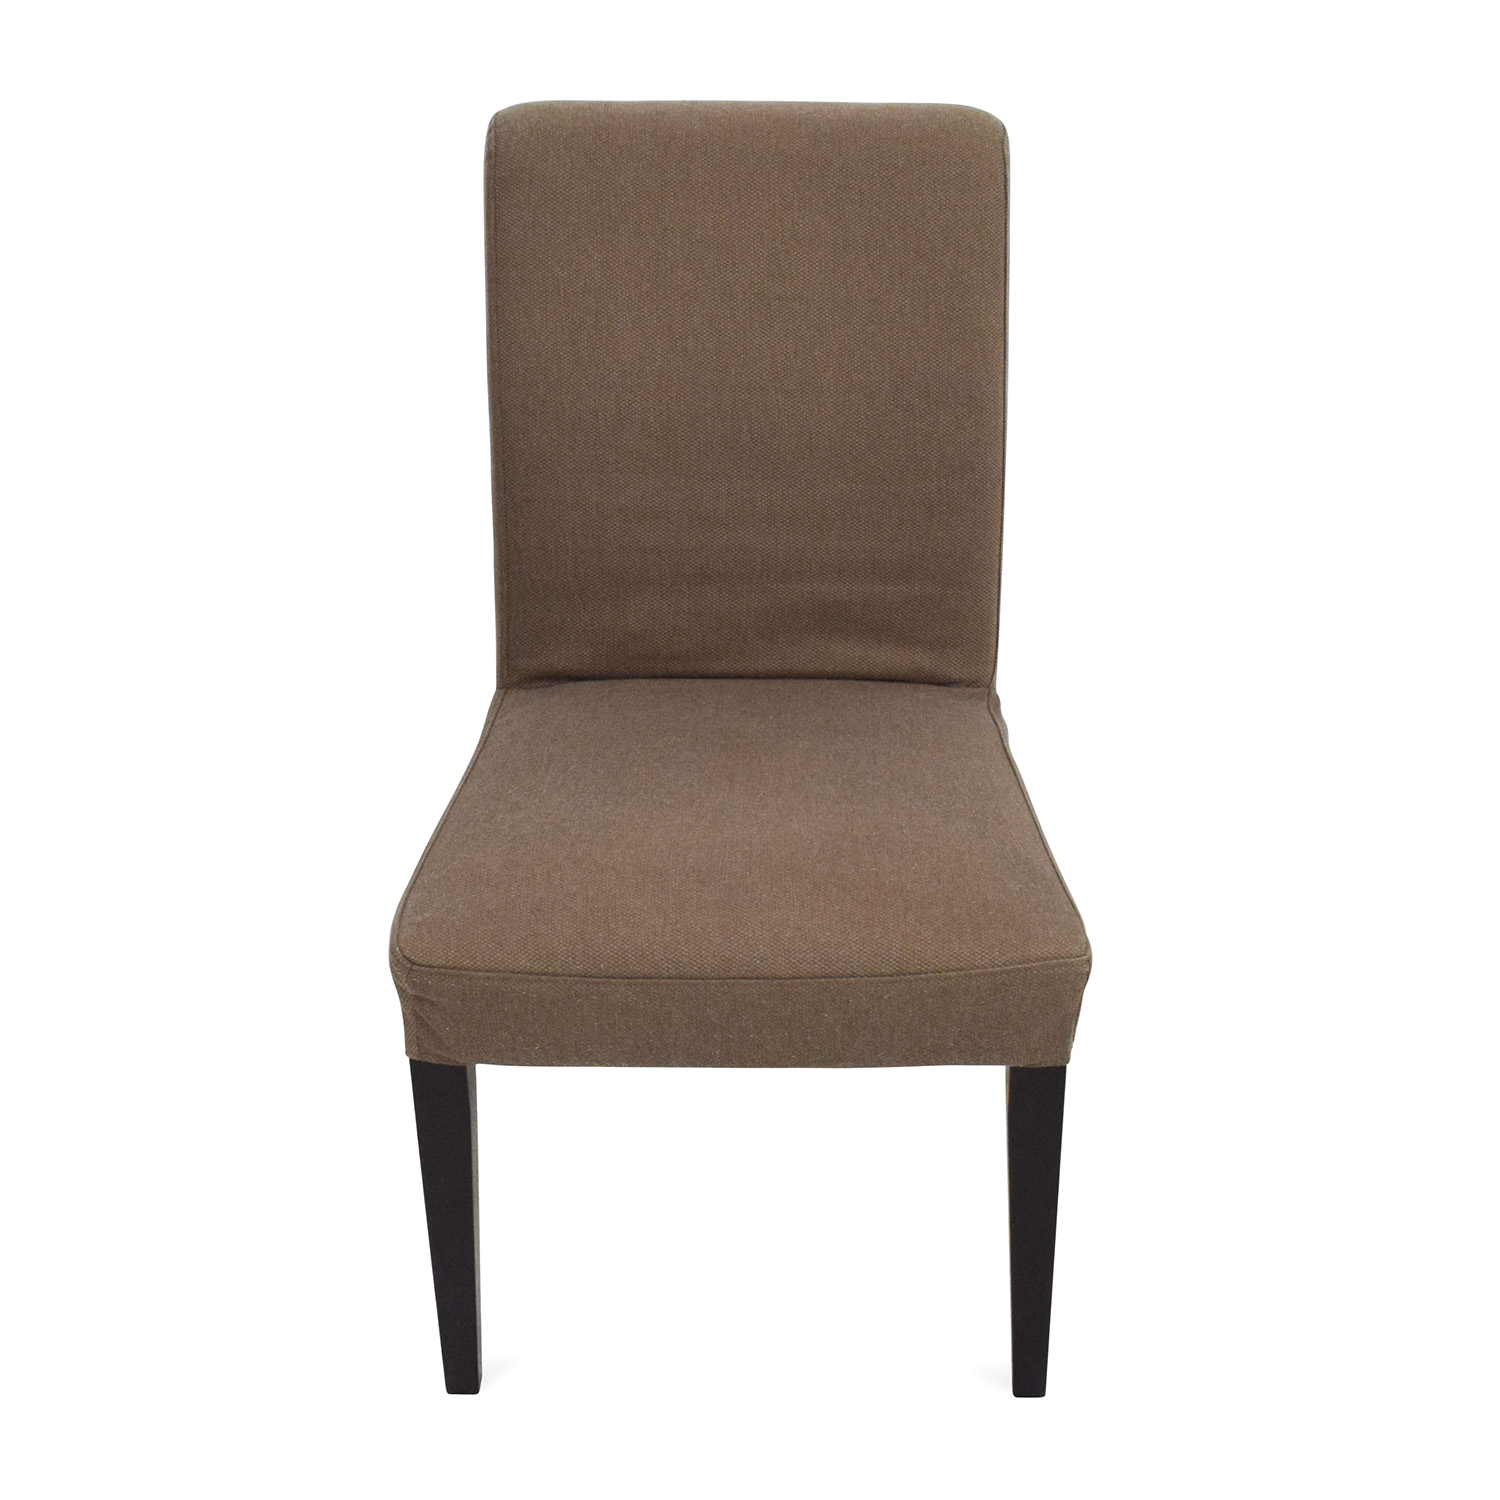 accent chairs ikea 78 ikea ikea henriksdal chair chairs 11147